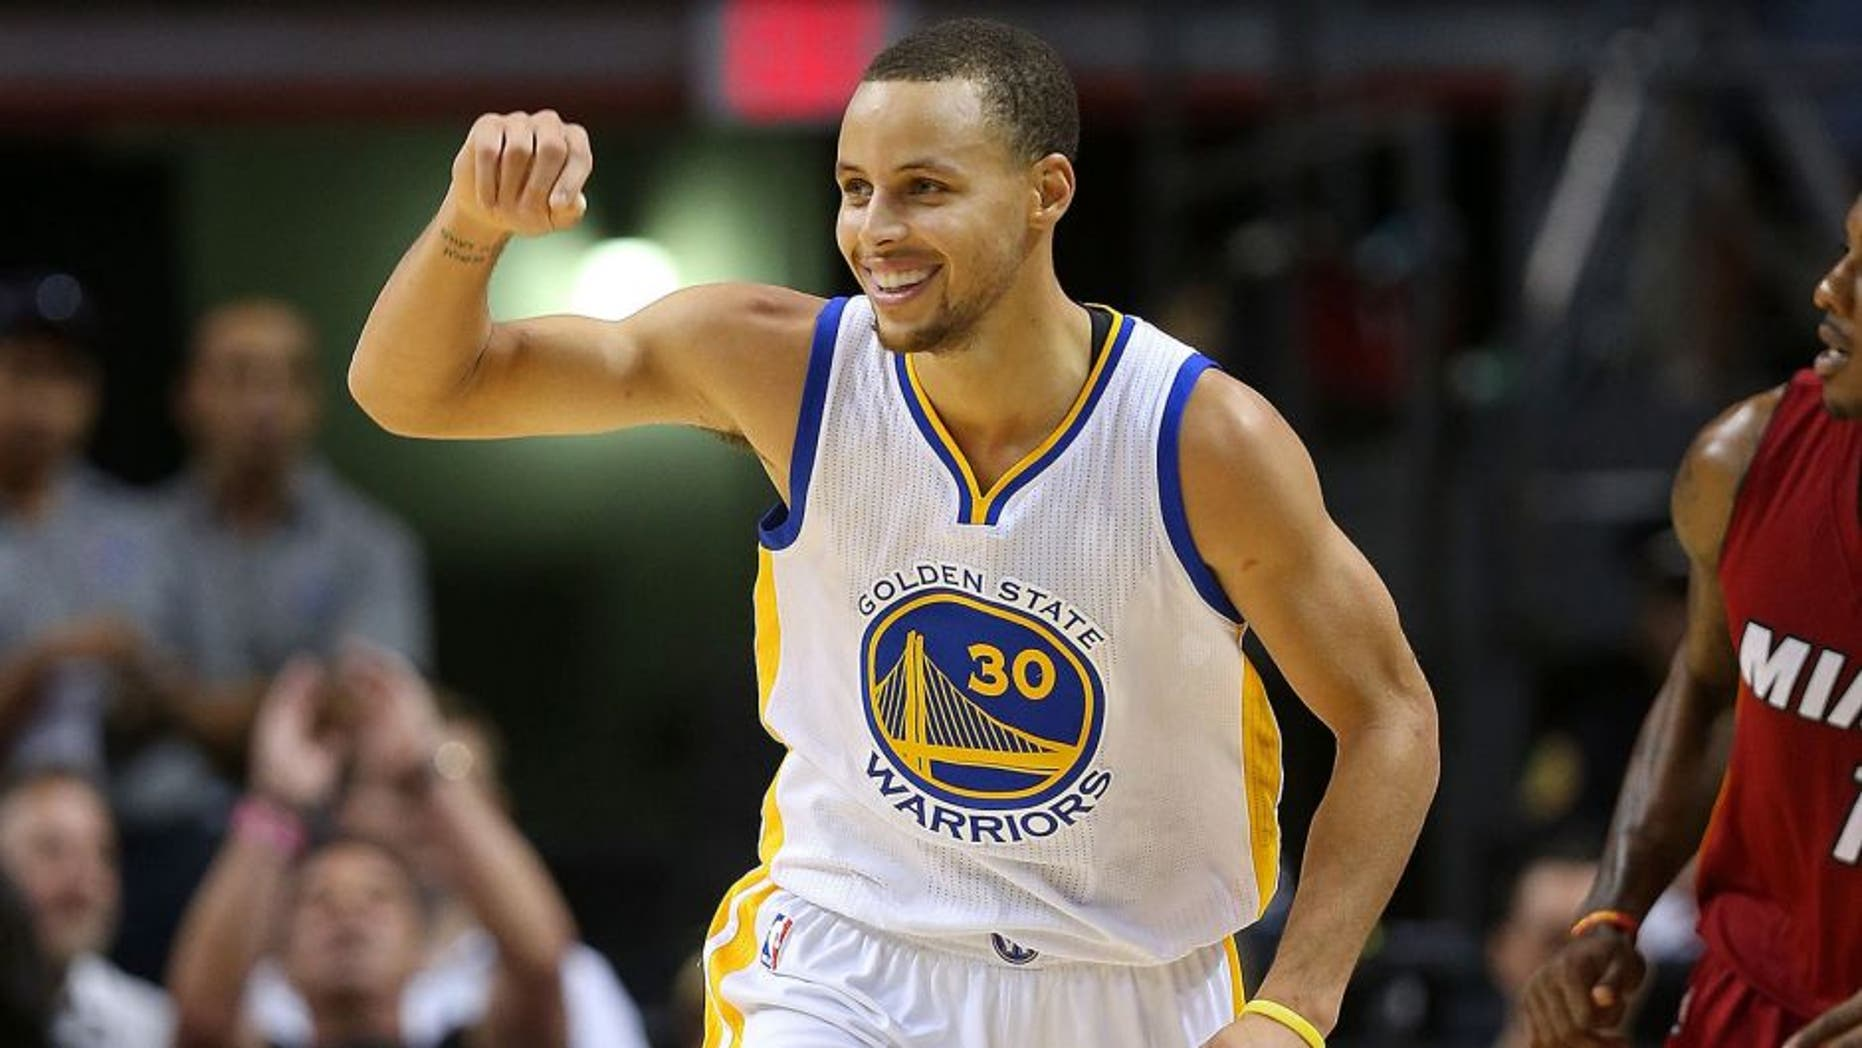 MIAMI, FL - NOVEMBER 25: Stephen Curry #30 of the Golden State Warriors reacts to a play during a game against the Miami Heat at American Airlines Arena on November 25, 2014 in Miami, Florida. NOTE TO USER: User expressly acknowledges and agrees that, by downloading and/or using this photograph, user is consenting to the terms and conditions of the Getty Images License Agreement. Mandatory copyright notice: (Photo by Mike Ehrmann/Getty Images)